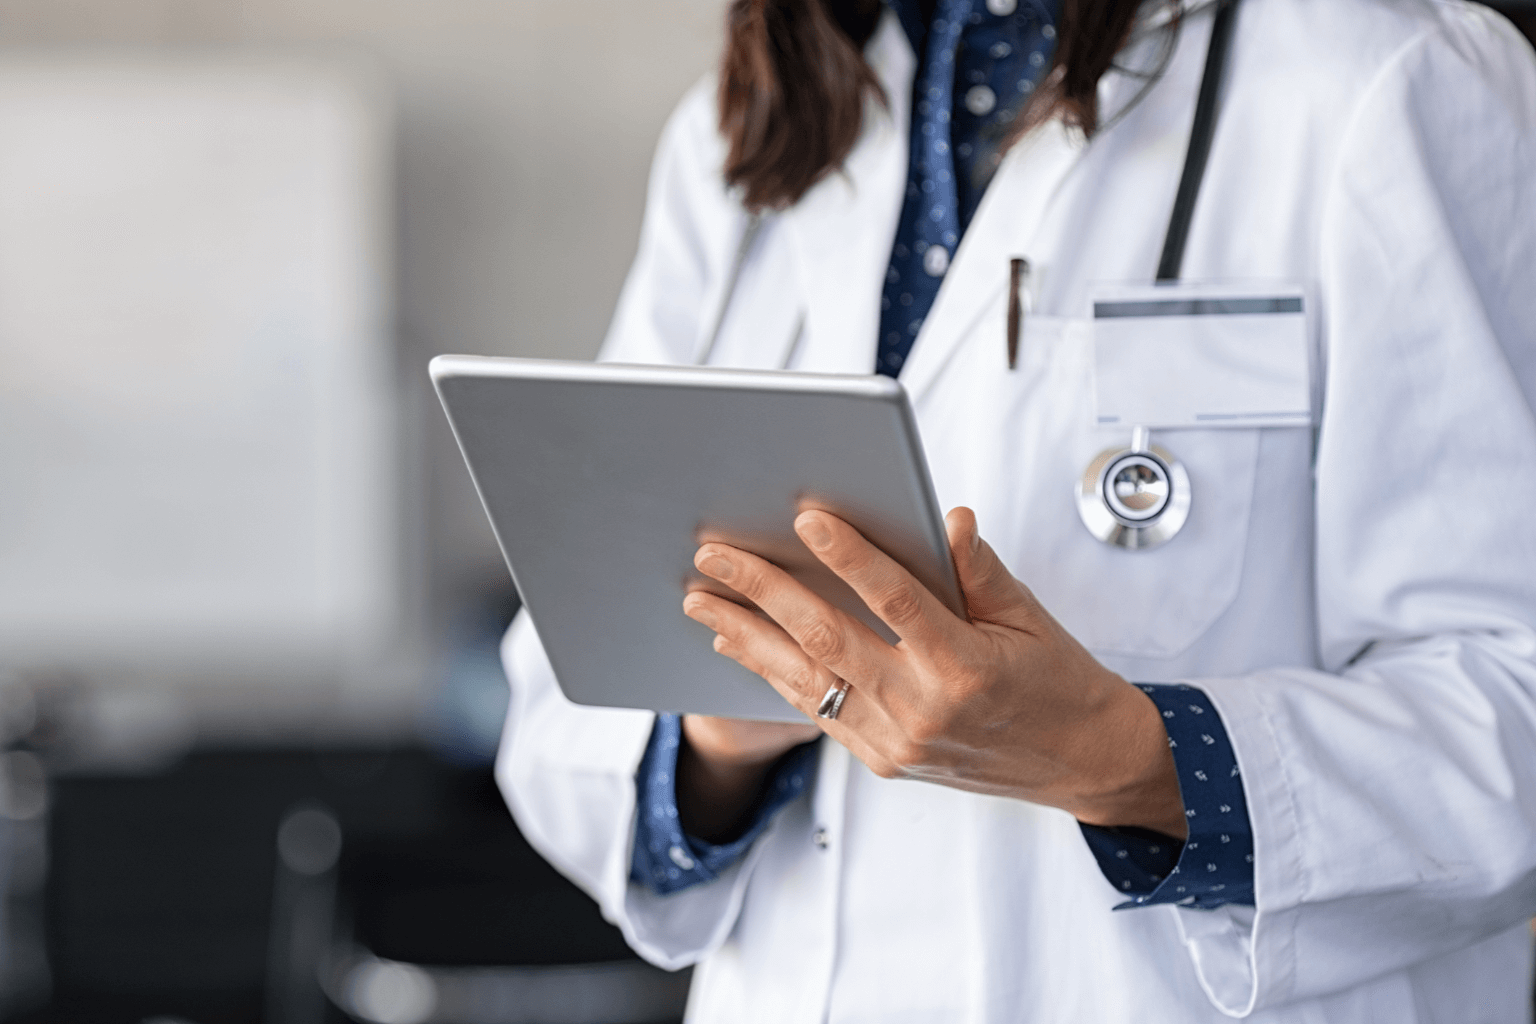 Close-up-of-woman-doctor-hands-using-digital-tablet-at-clinicjpg